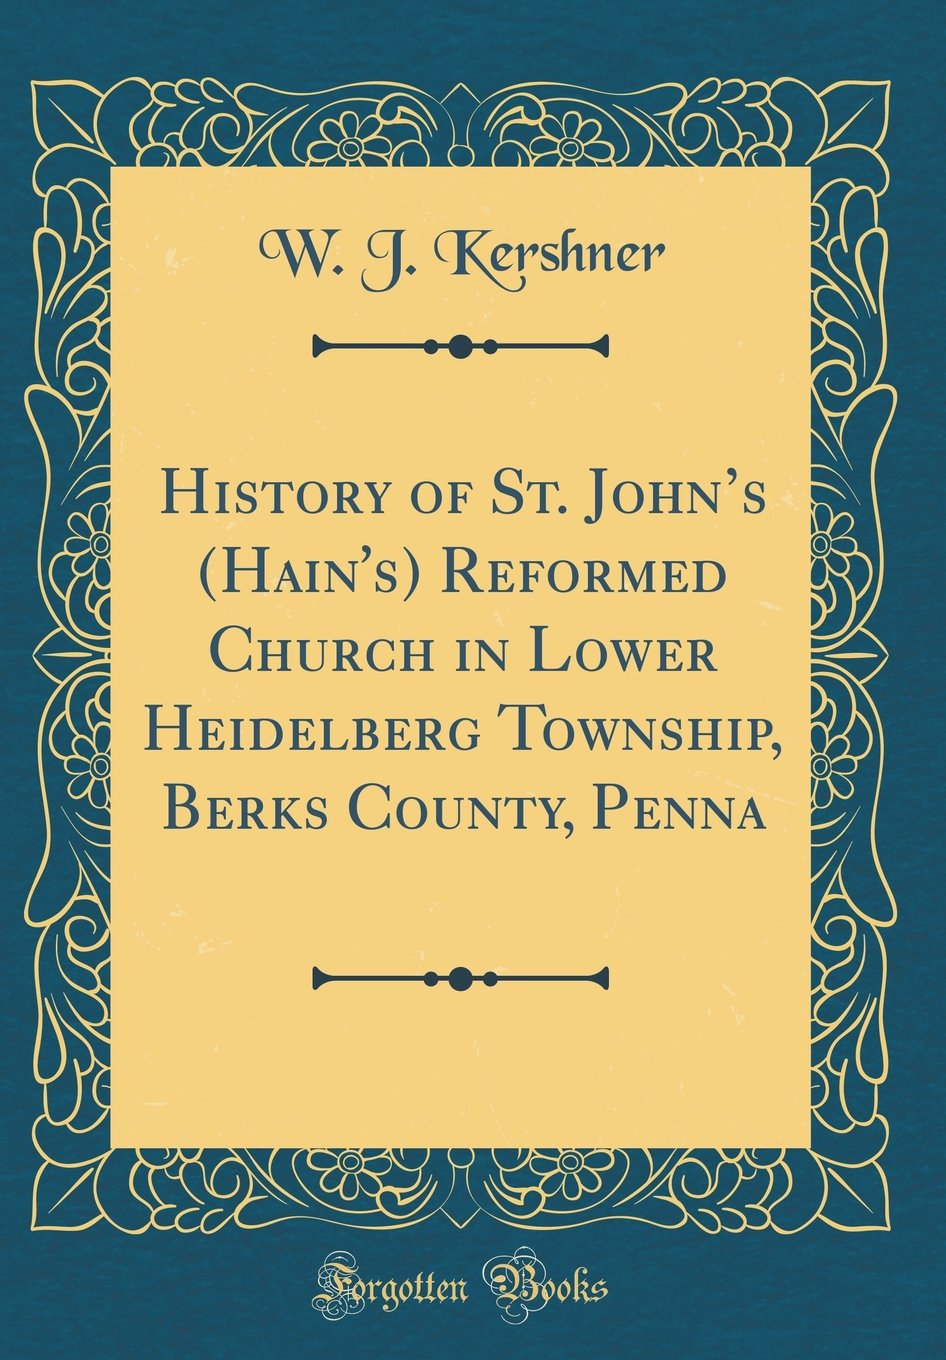 Download History of St. John's (Hain's) Reformed Church in Lower Heidelberg Township, Berks County, Penna (Classic Reprint) ebook